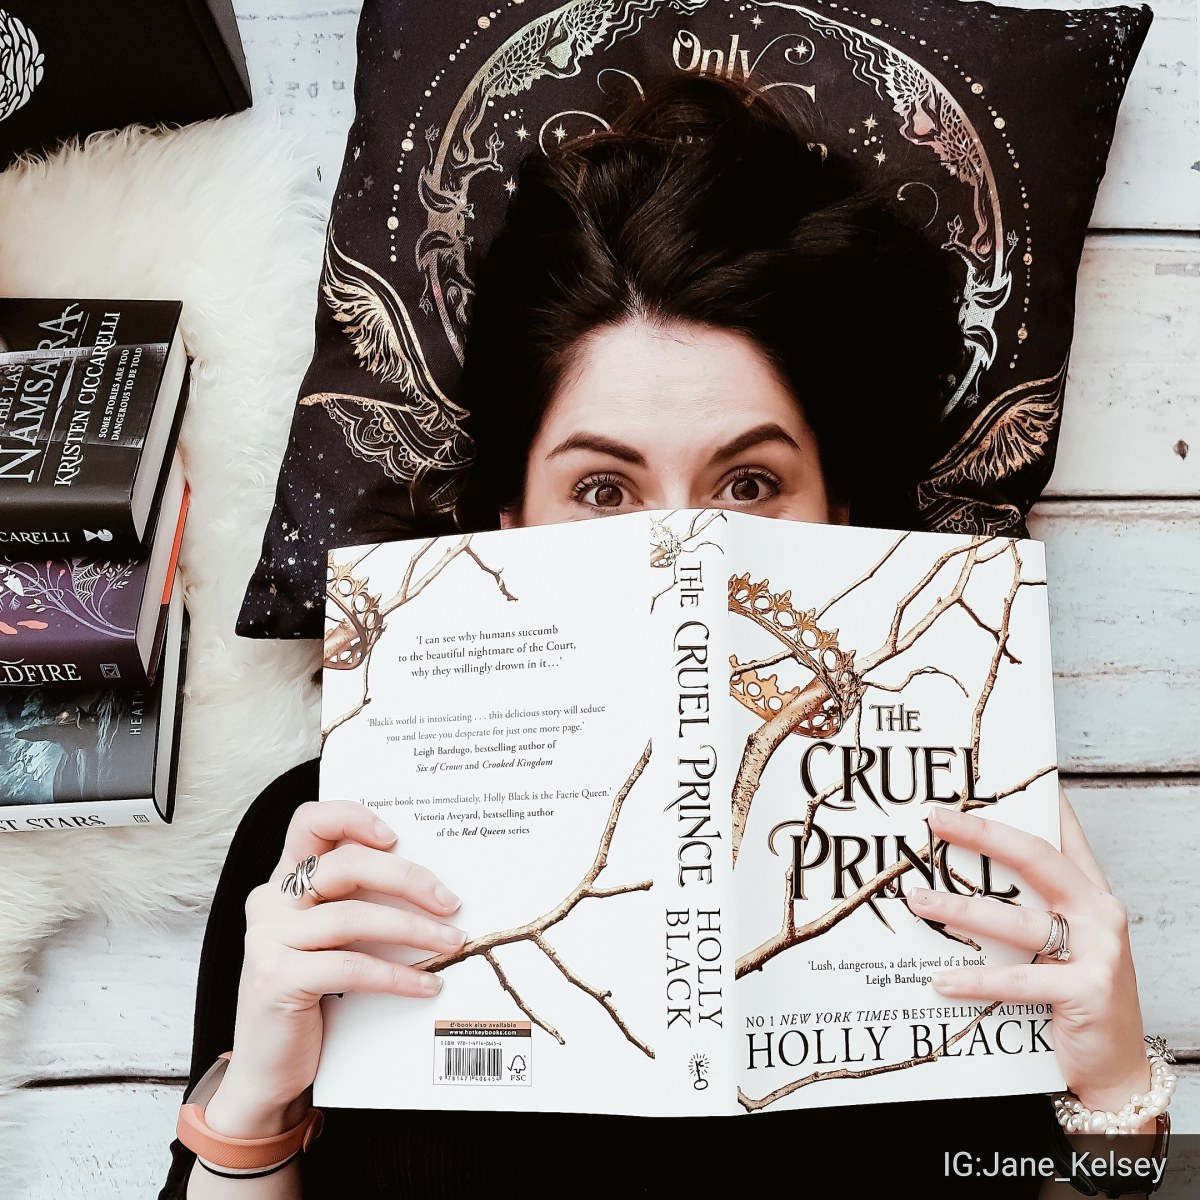 #BookReview: The Cruel Prince by Holly Black